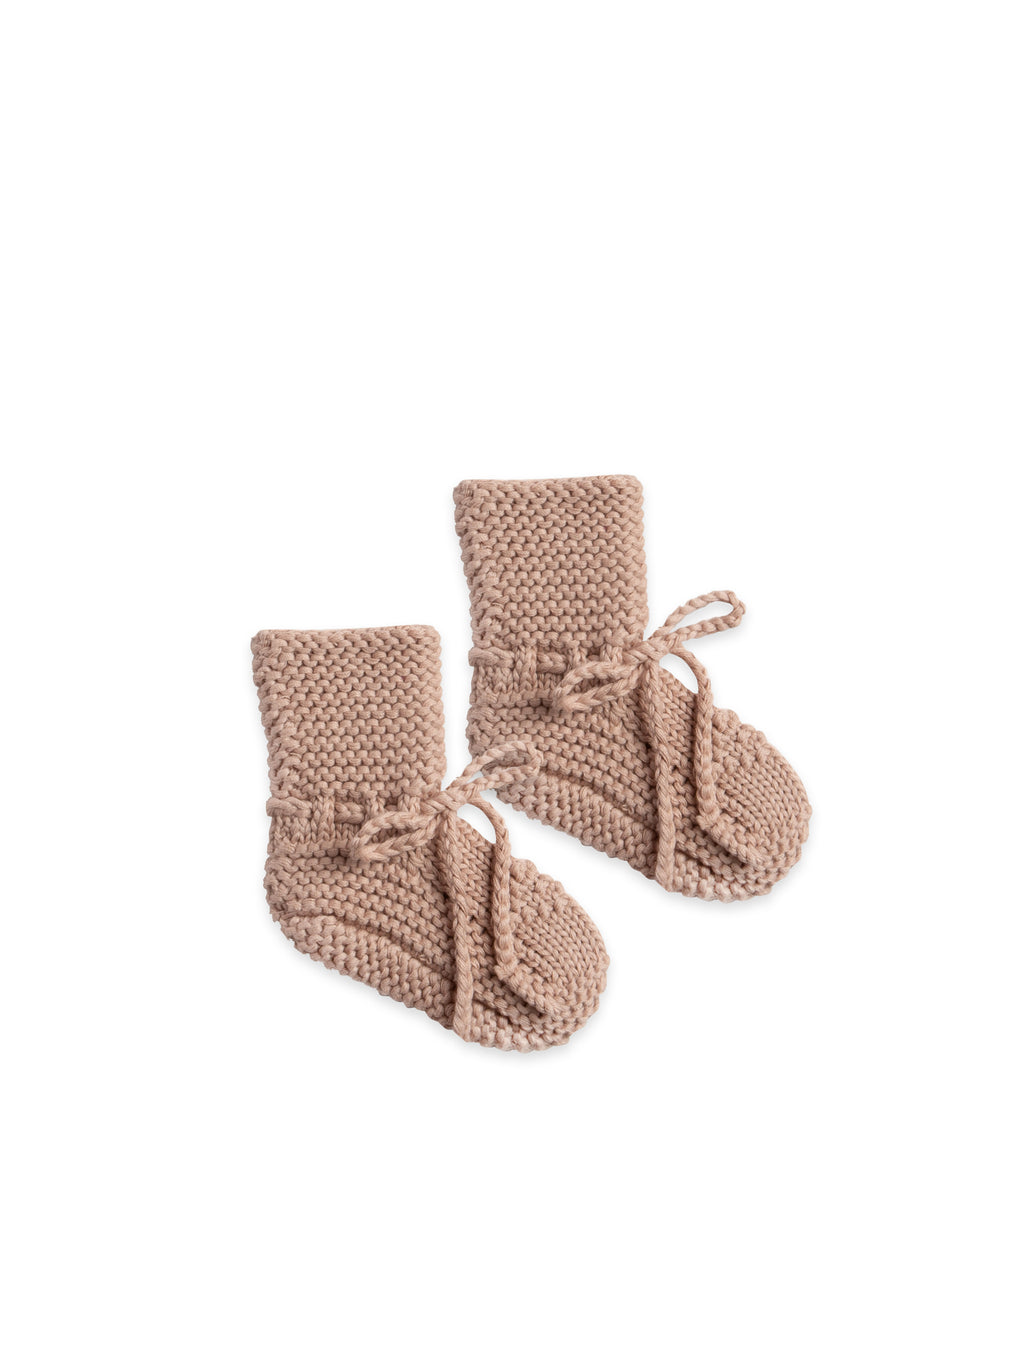 Quincy Mae Knit Baby Booties - Petal